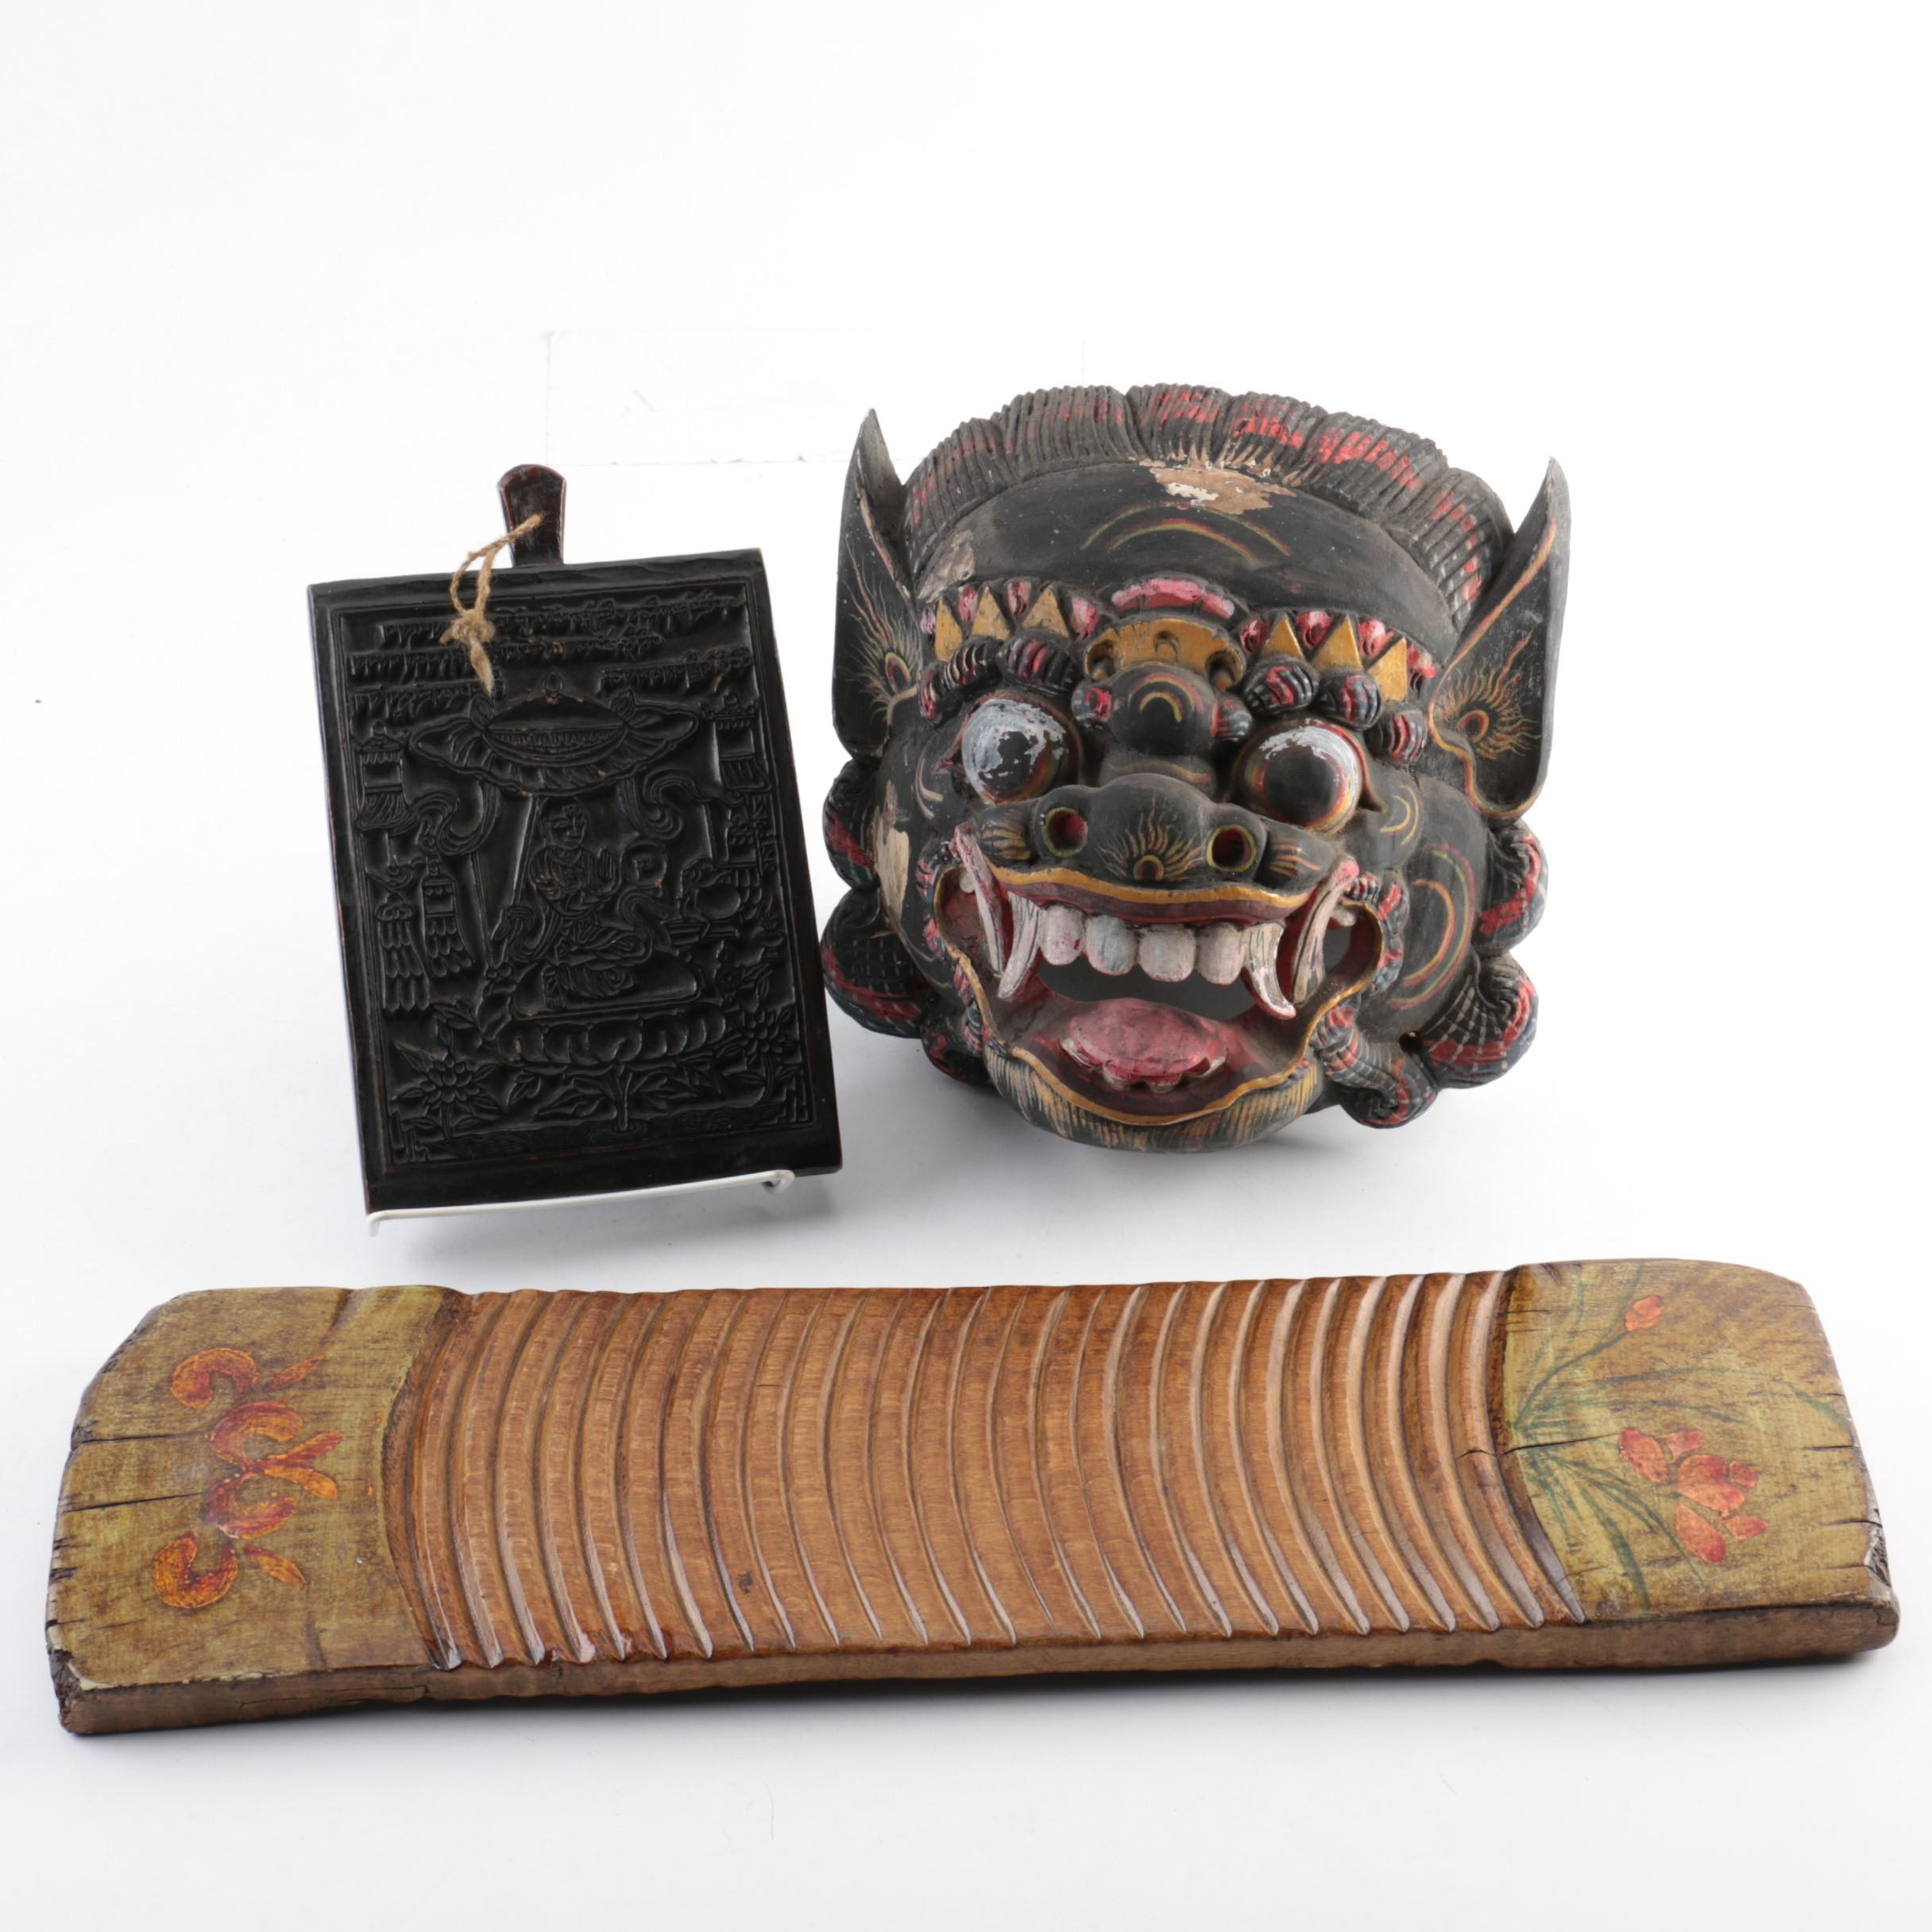 Scandinavian Folk Carved Wood Washboard with Asian Mask and Carving